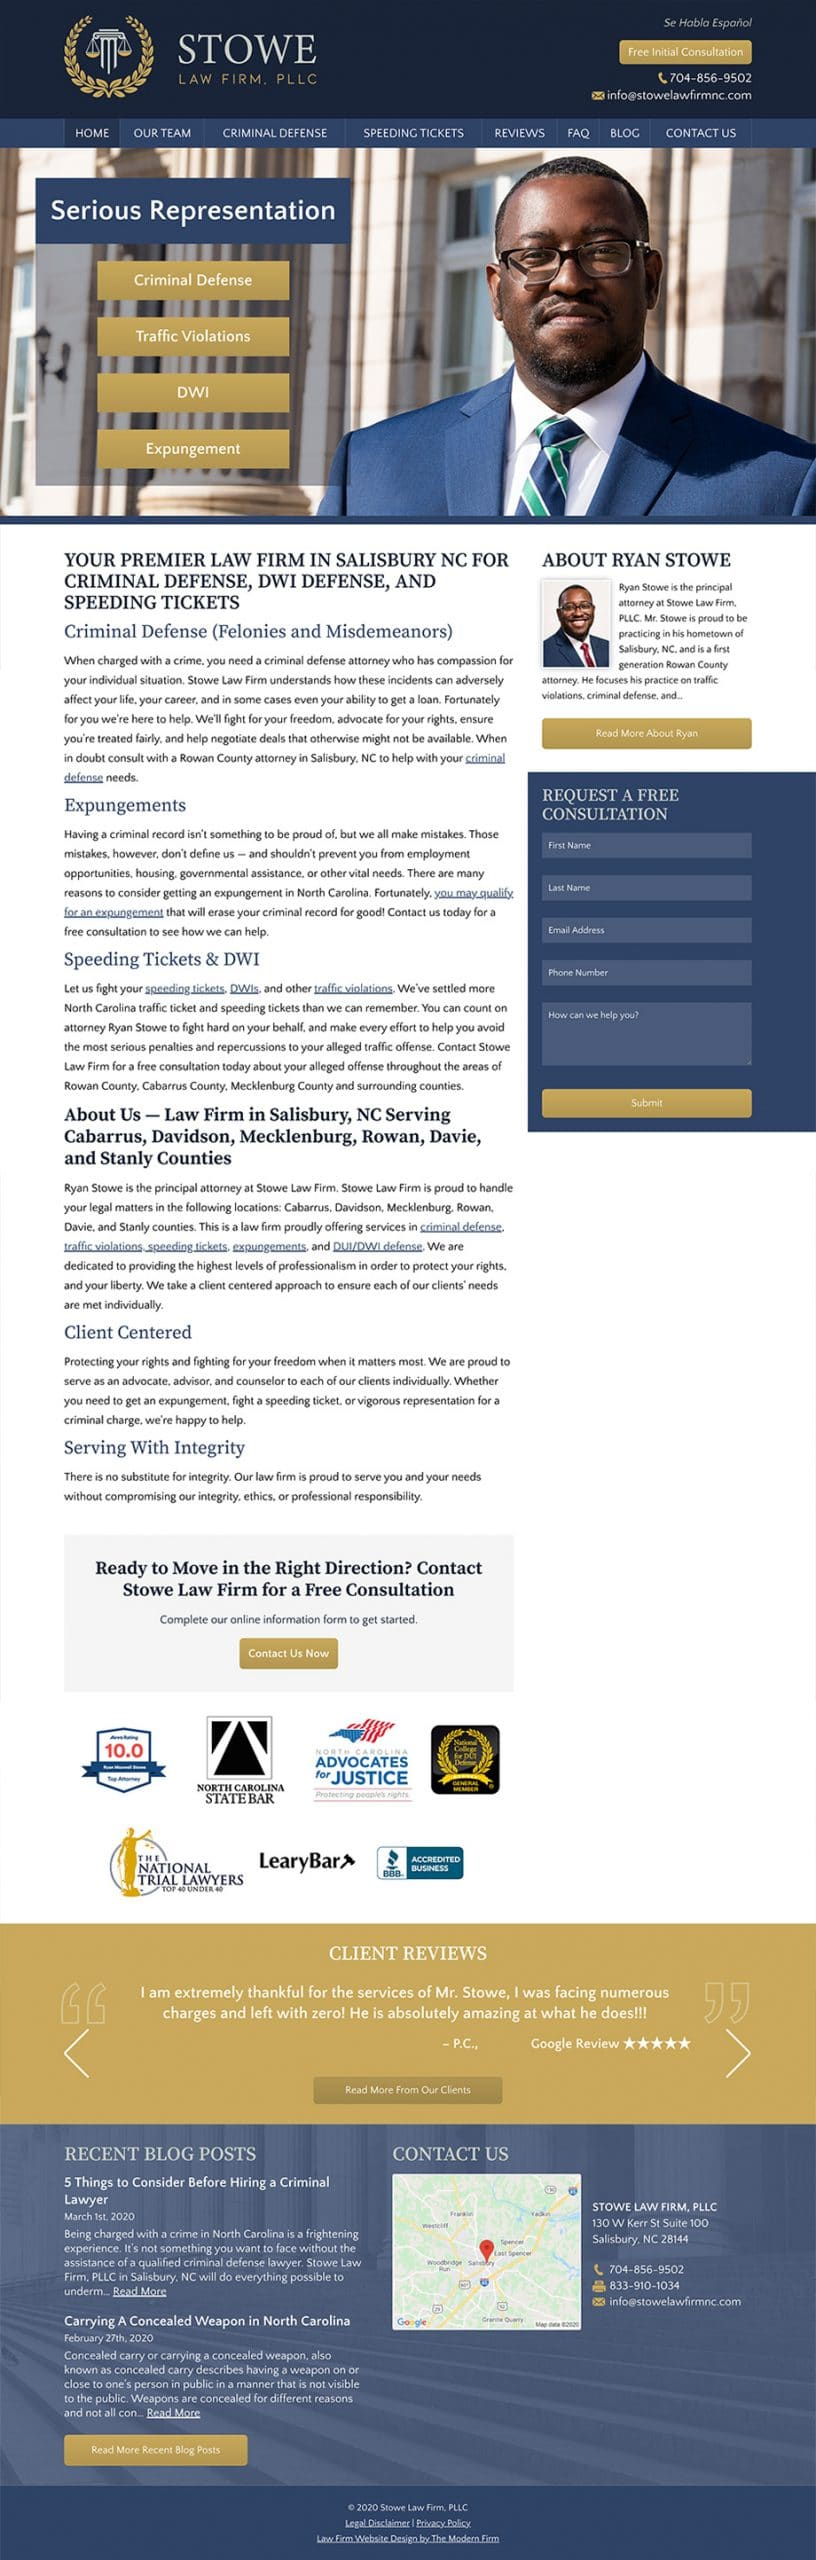 Law Firm Website for Stowe Law Firm, PLLC